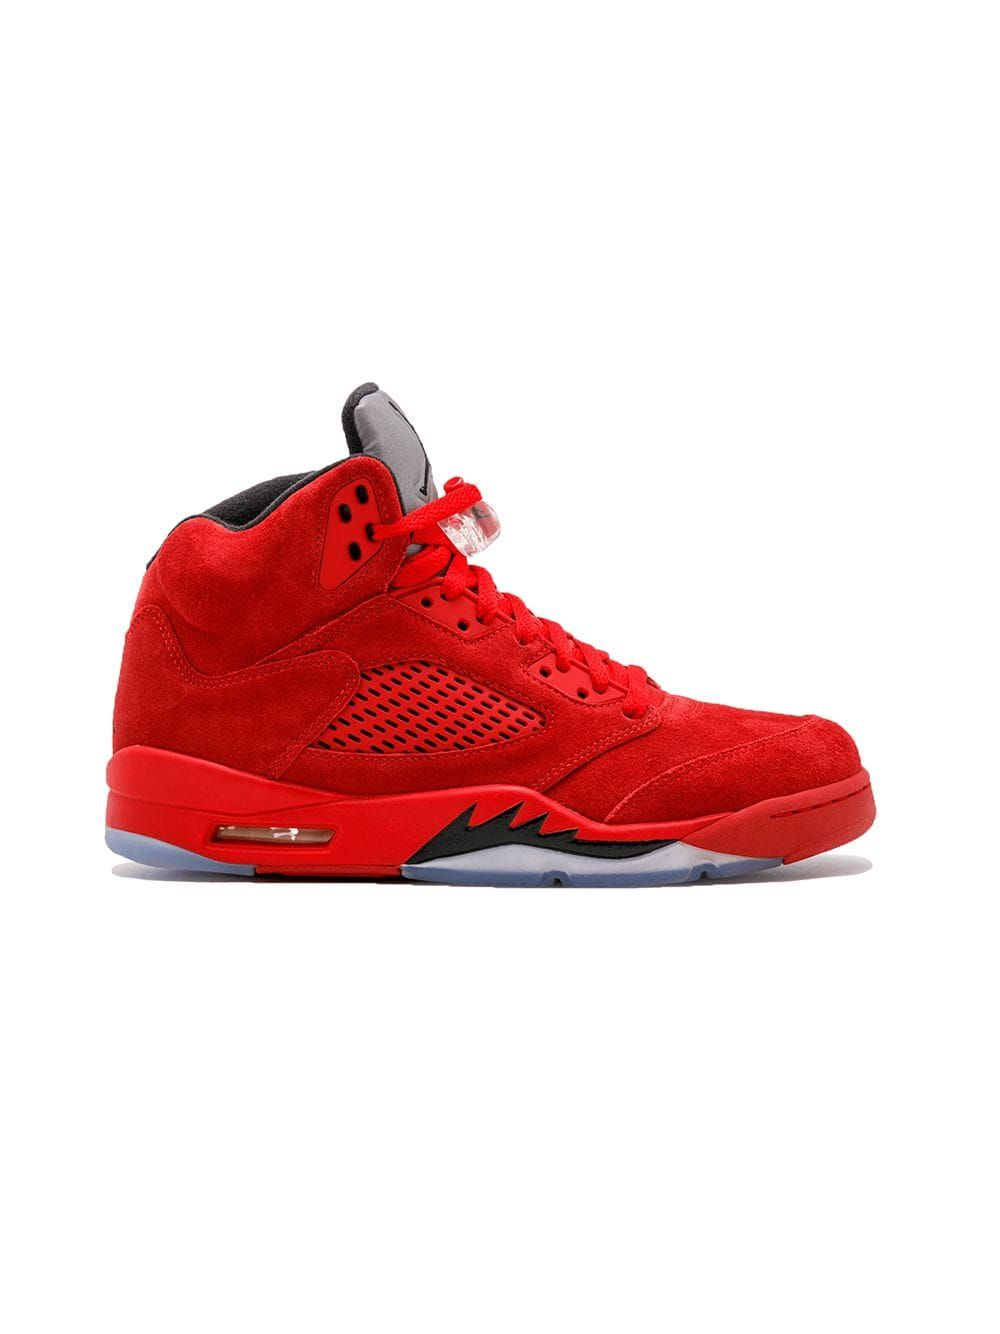 Jordan Air Jordan 5 Retro sneakers – Red